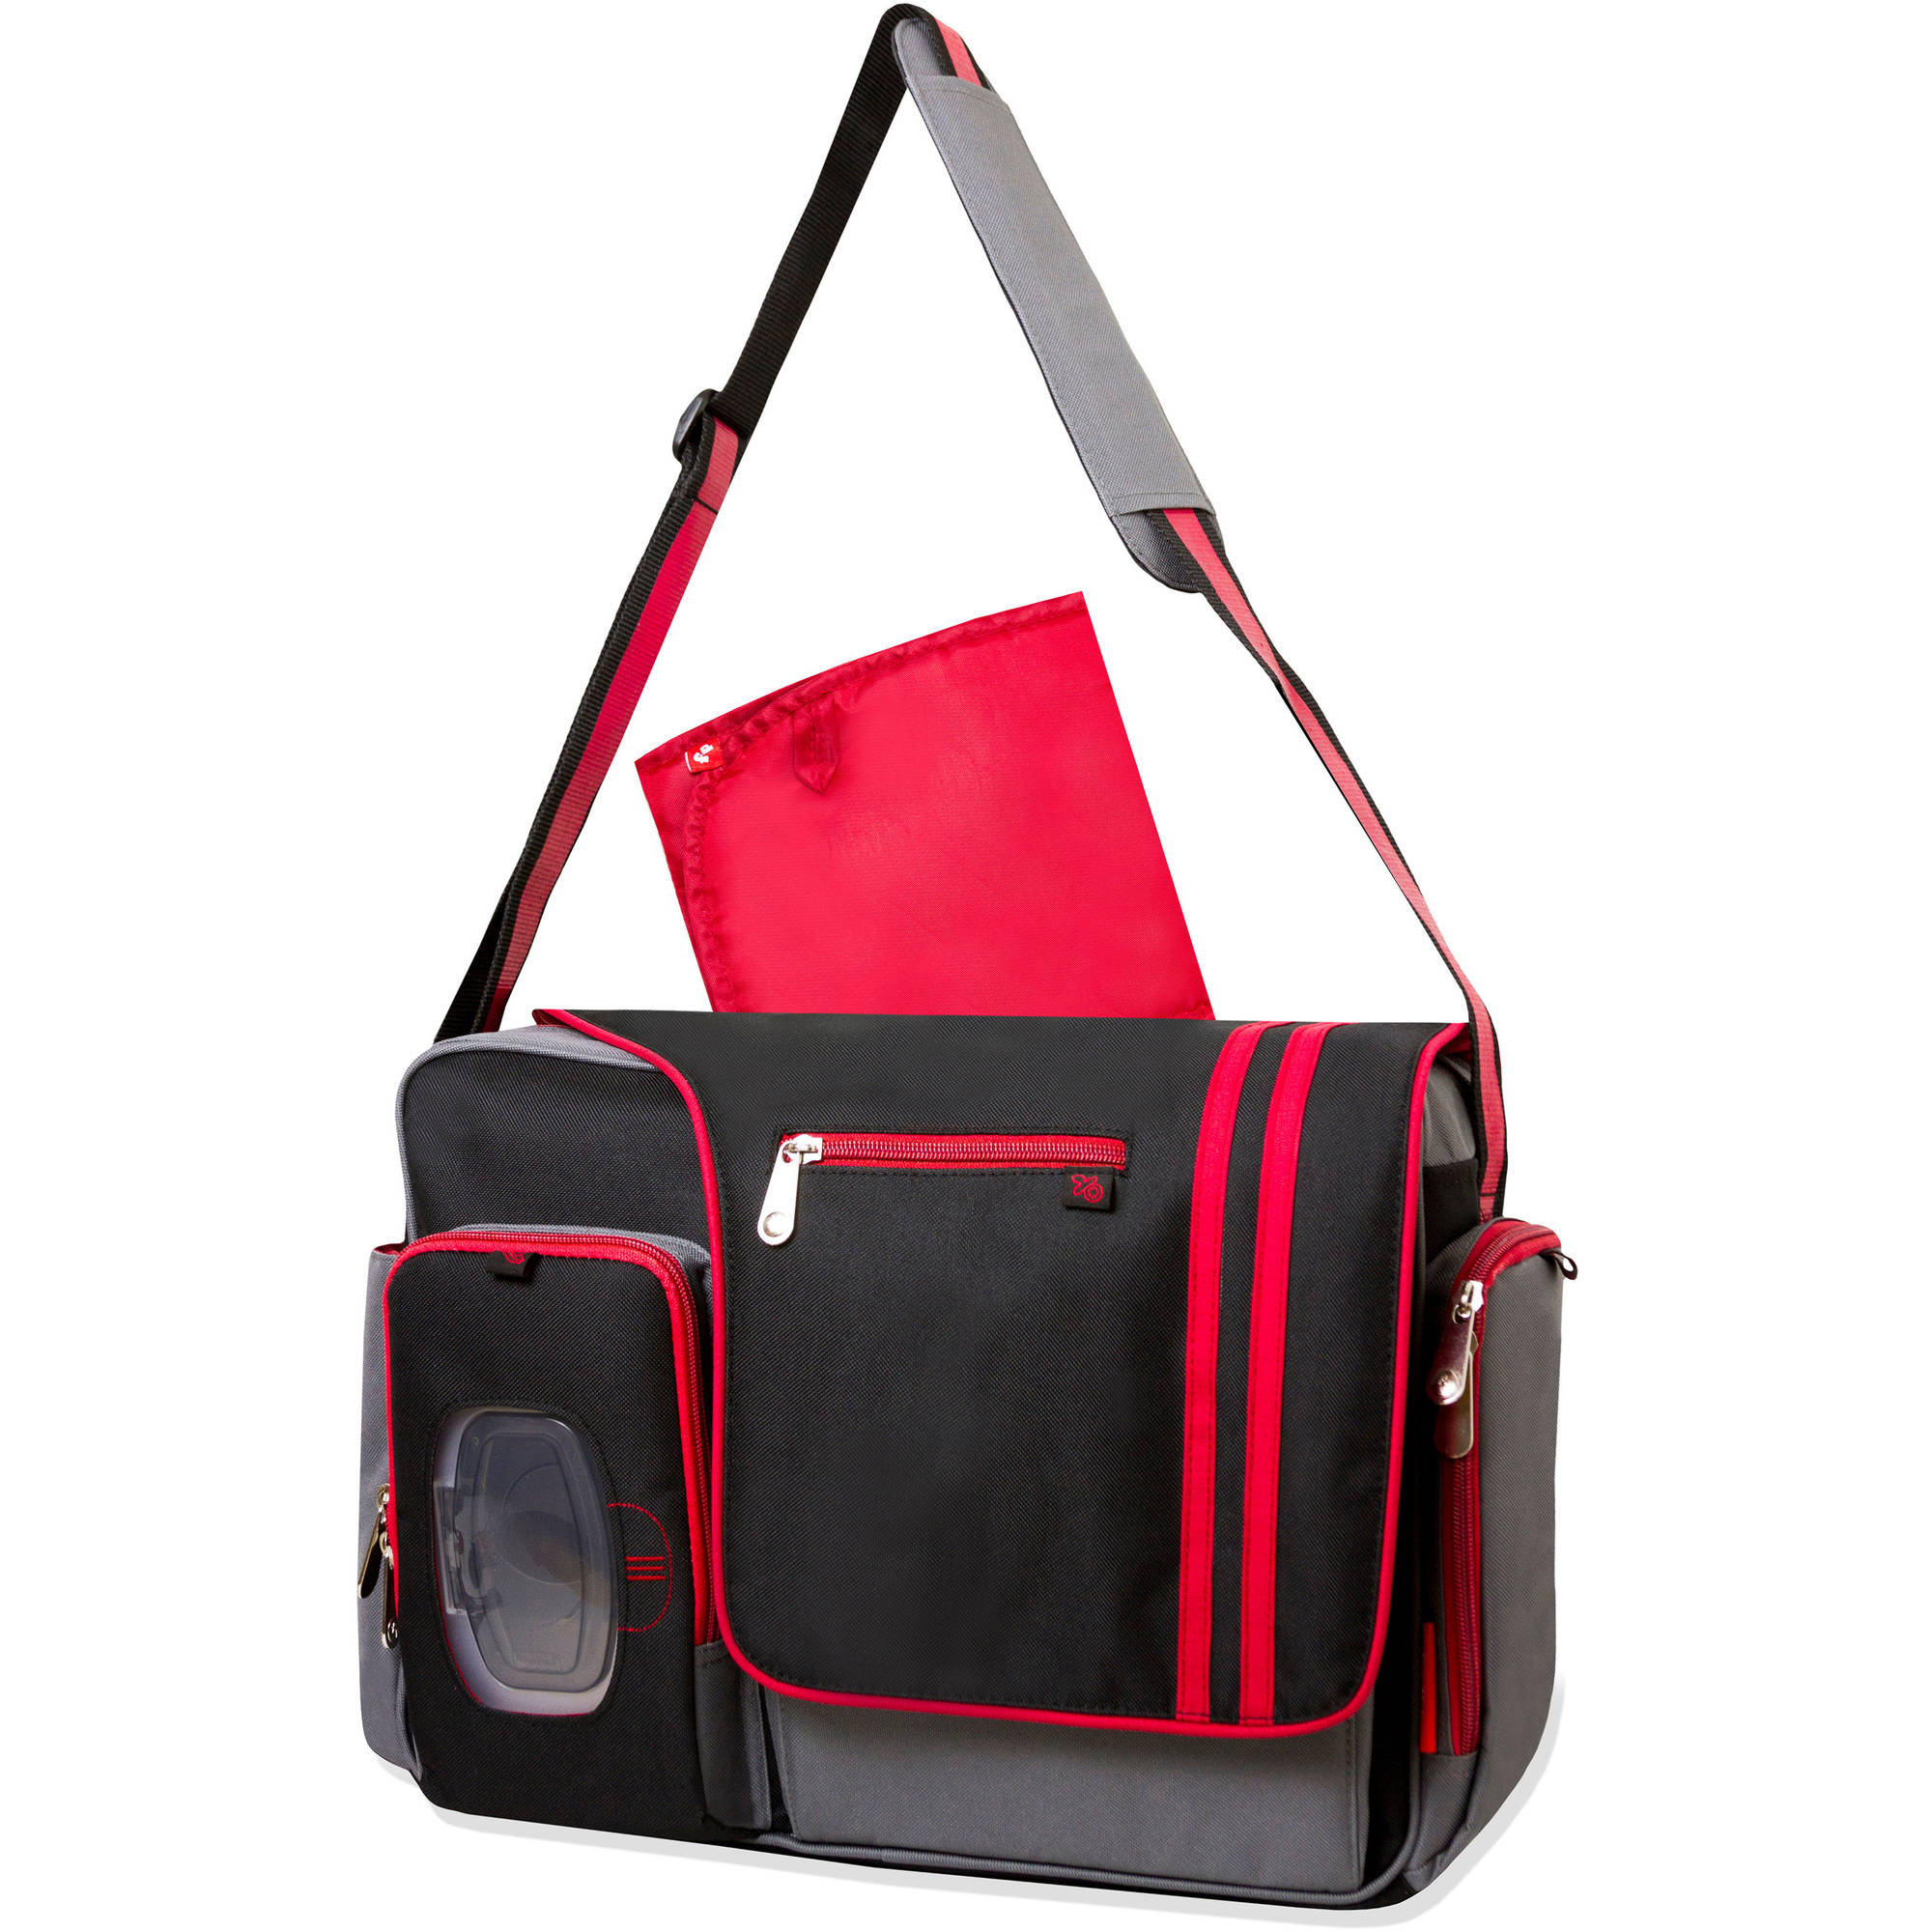 Fisher-Price Messenger Diaper Bag, Gray/Black/Red - Walmart.com